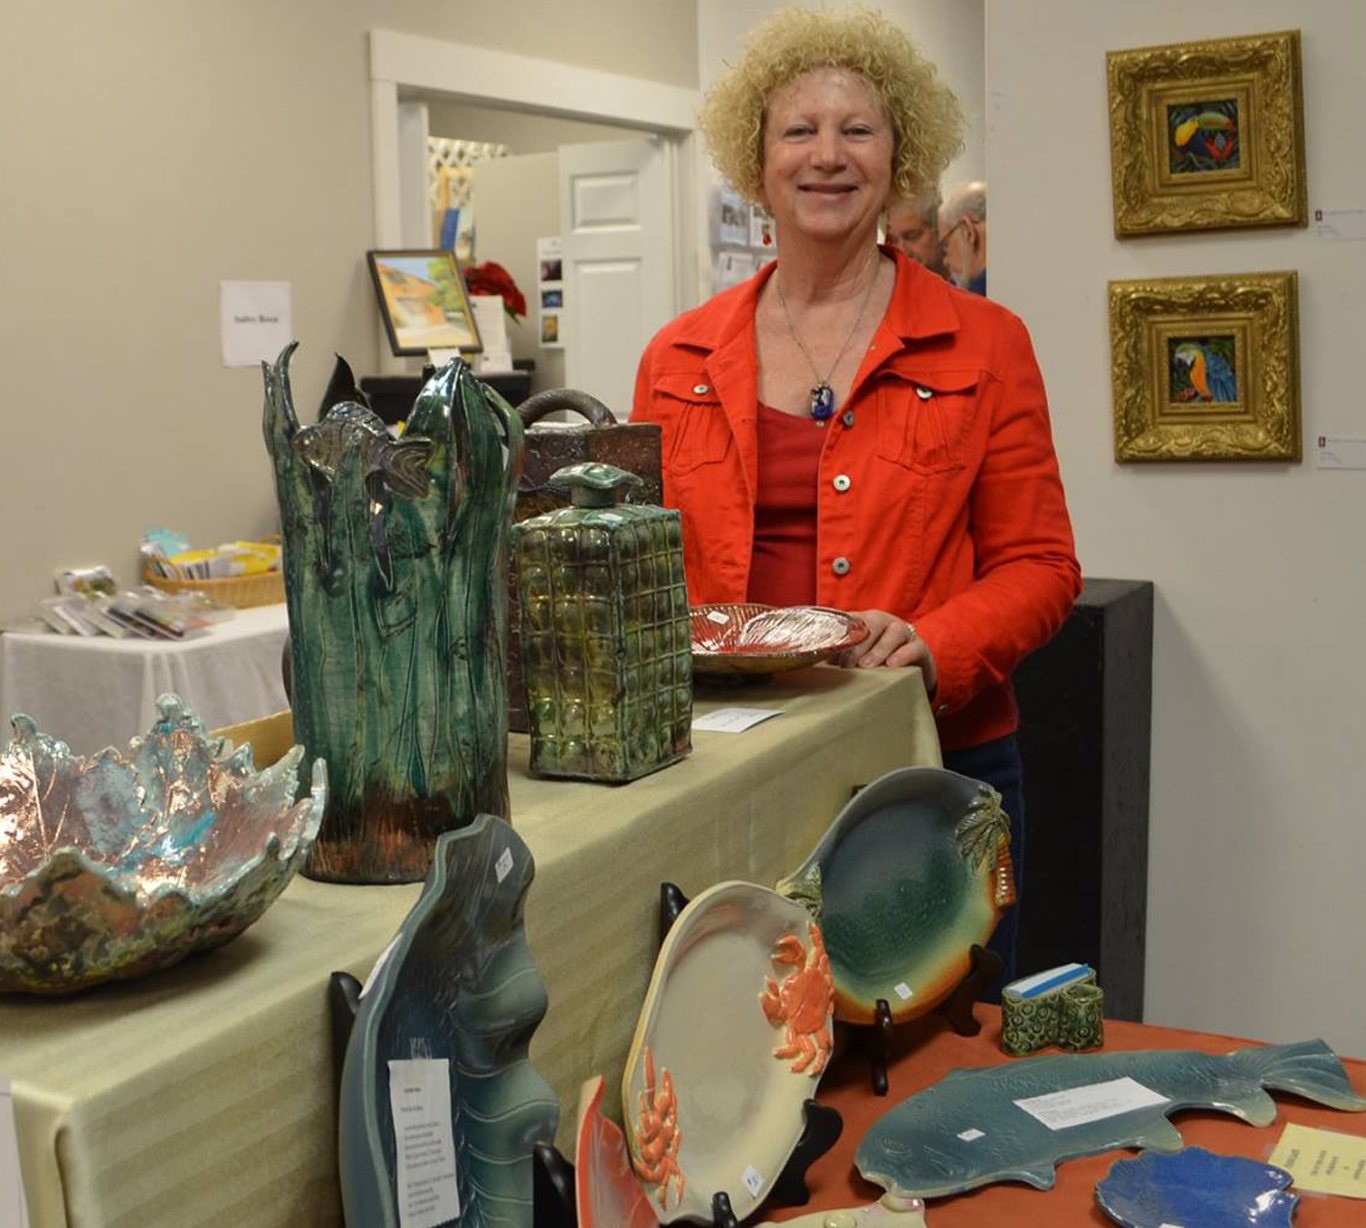 Portrait of a Robinn Wren standing next to various pottery pieces all on display in a gallery.